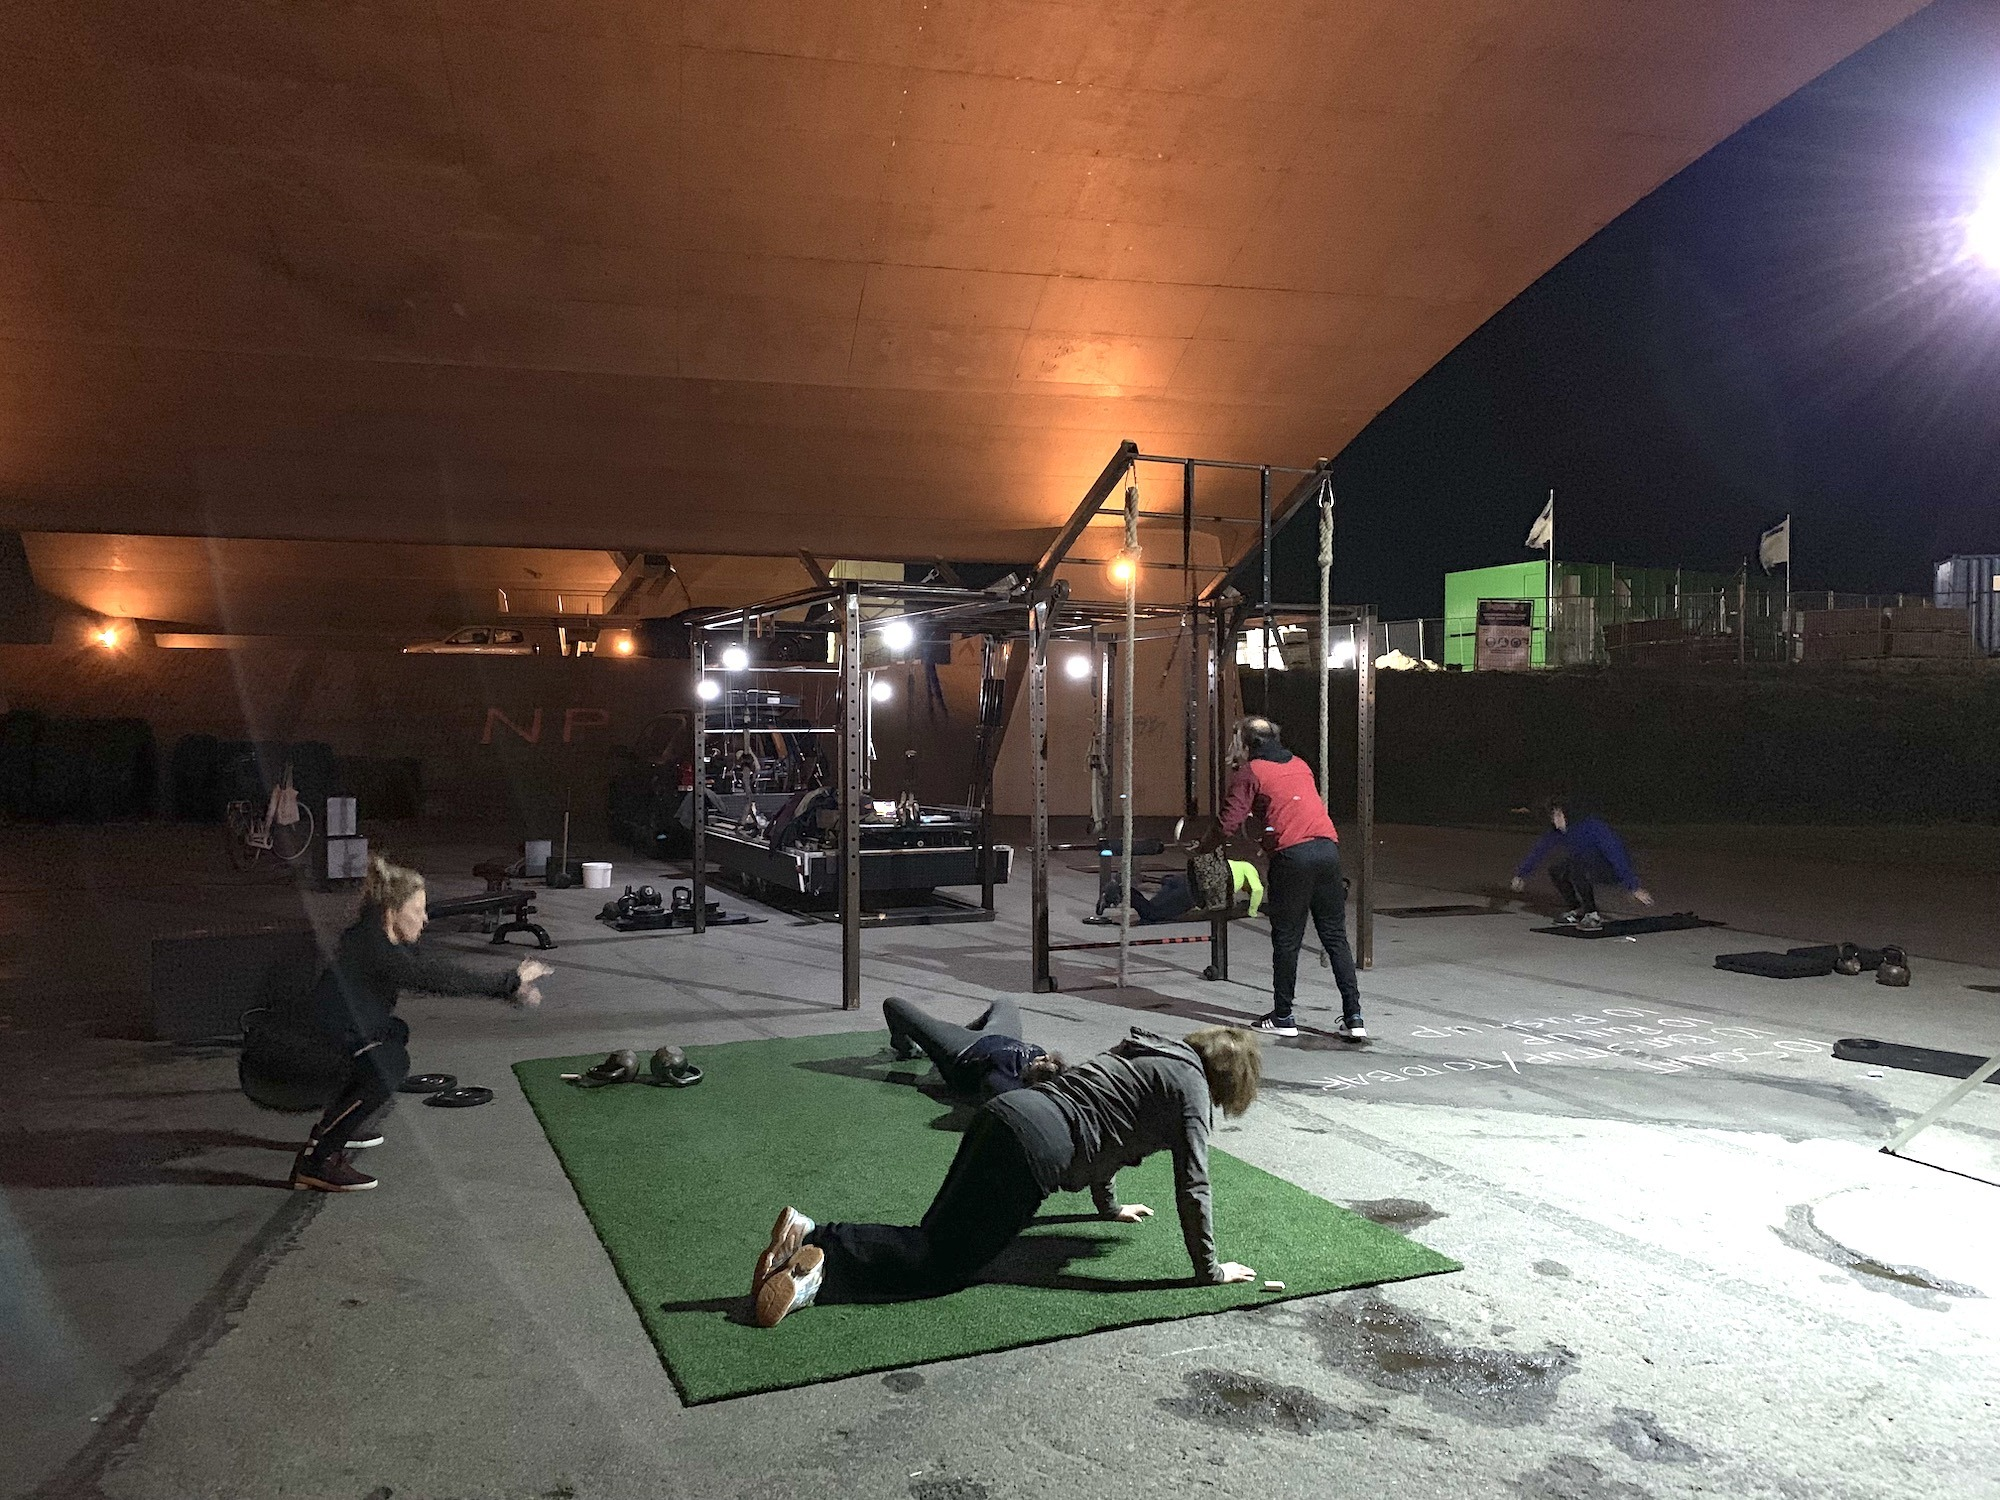 NYMA OUTDOOR GYM 14-01-2019